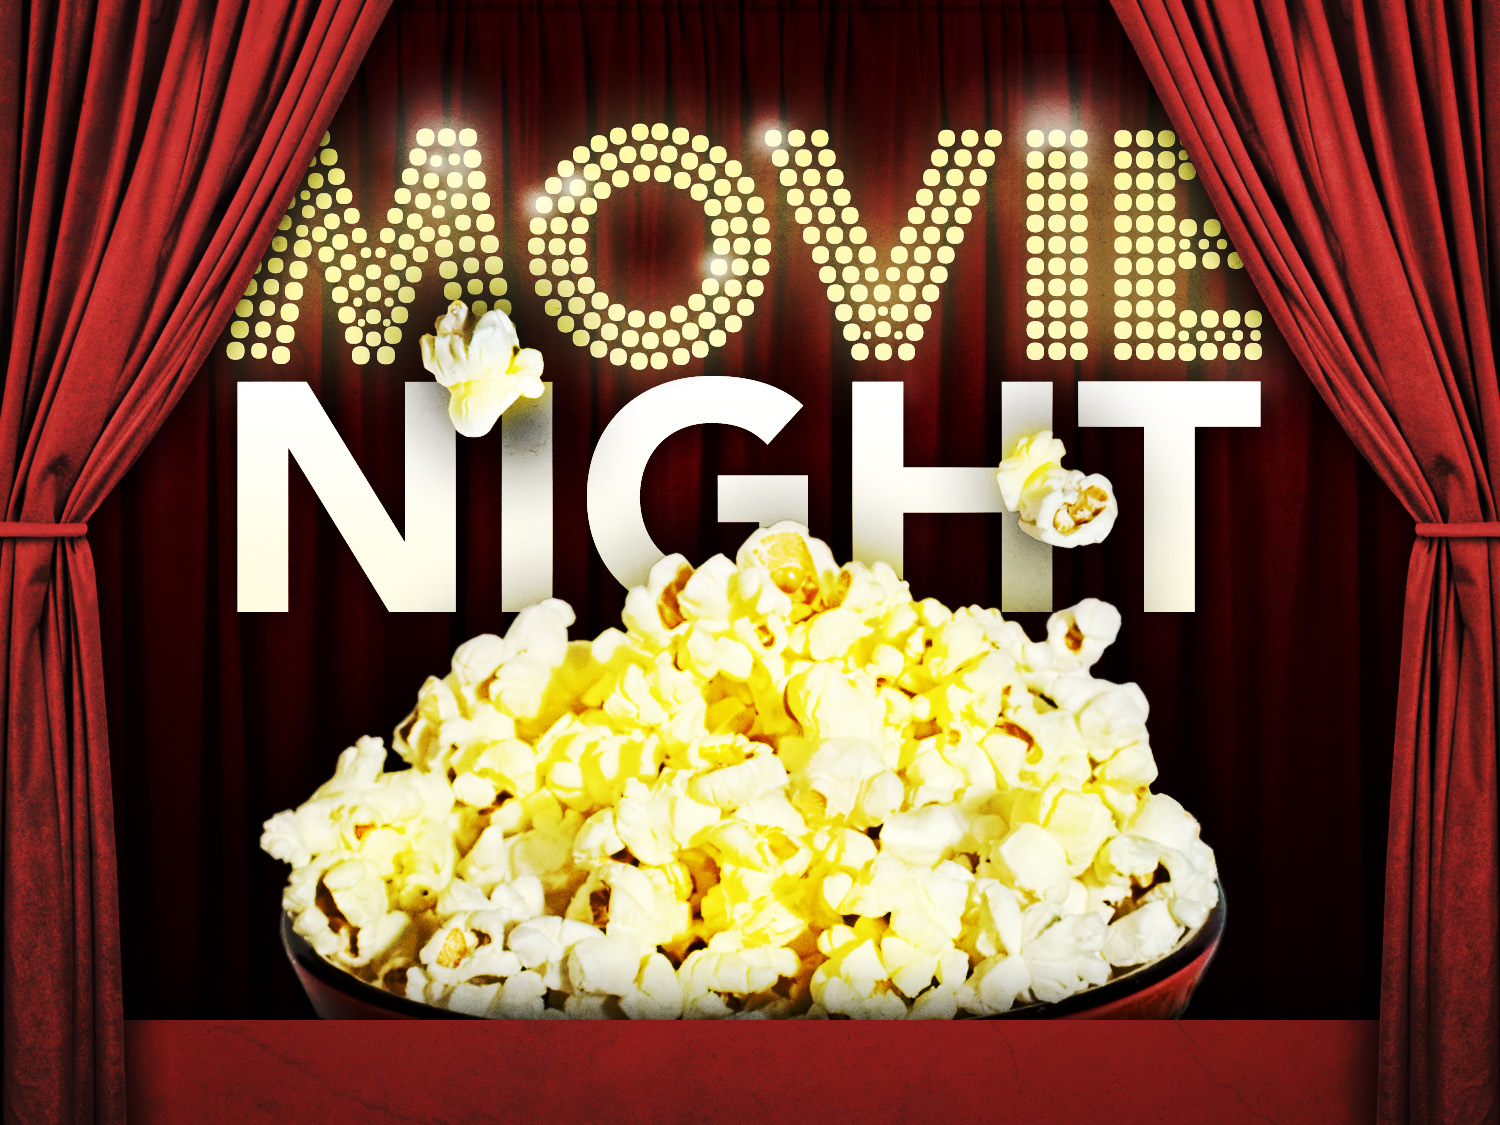 Movie Night with Disney Movies QUEEN Of KATWE & PINOCCHIO, grab a seat!